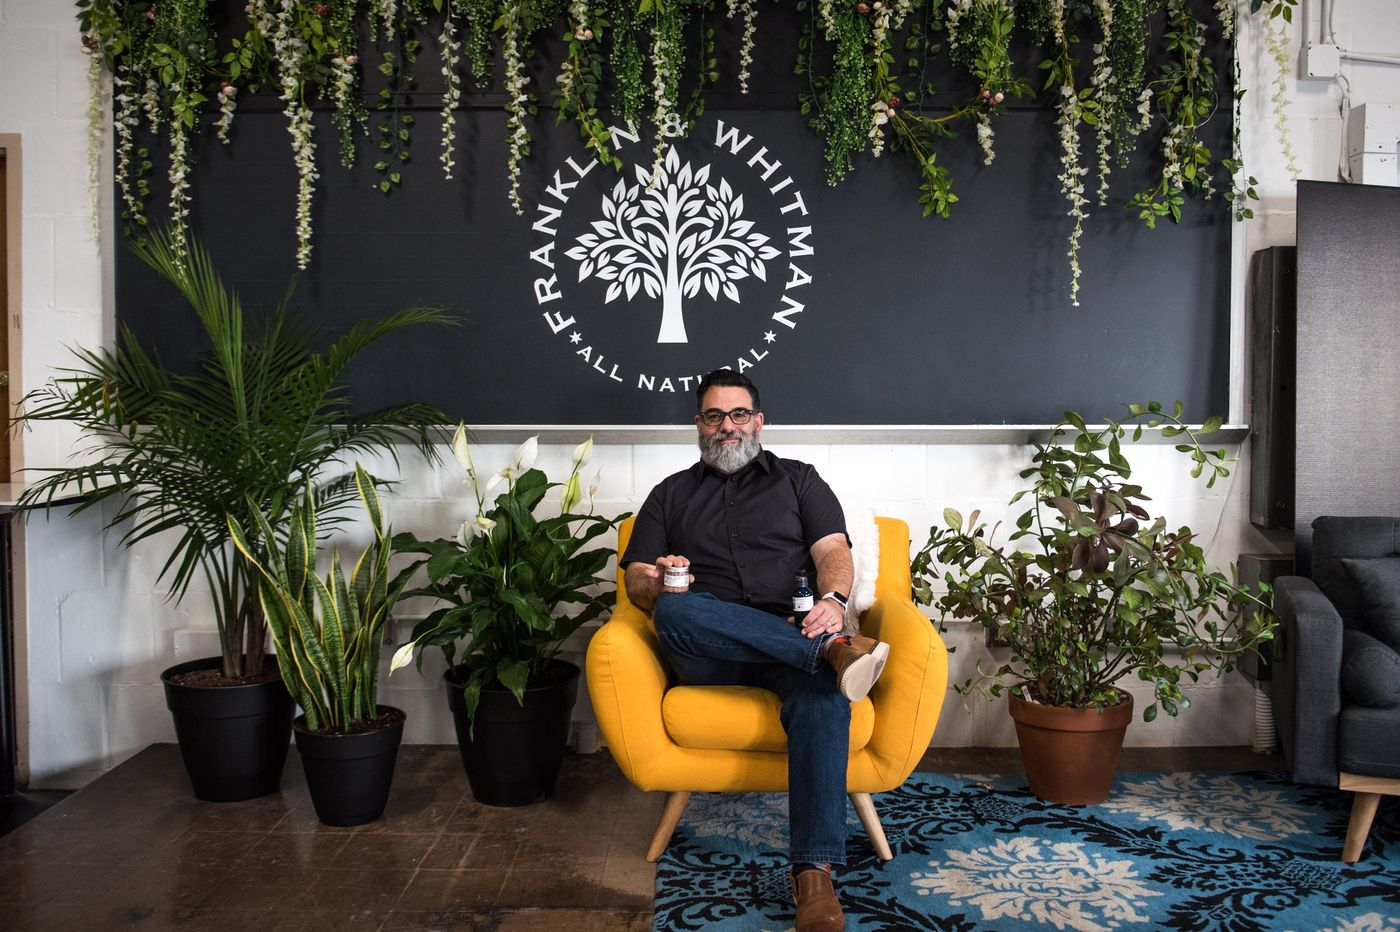 11 cool places to check out at the Bok building (that aren't the bar) - Philadelphia InquirerToday a haven for entrepreneurs and craftsmen of all kinds, Bok is morphing into a new kind of destination.